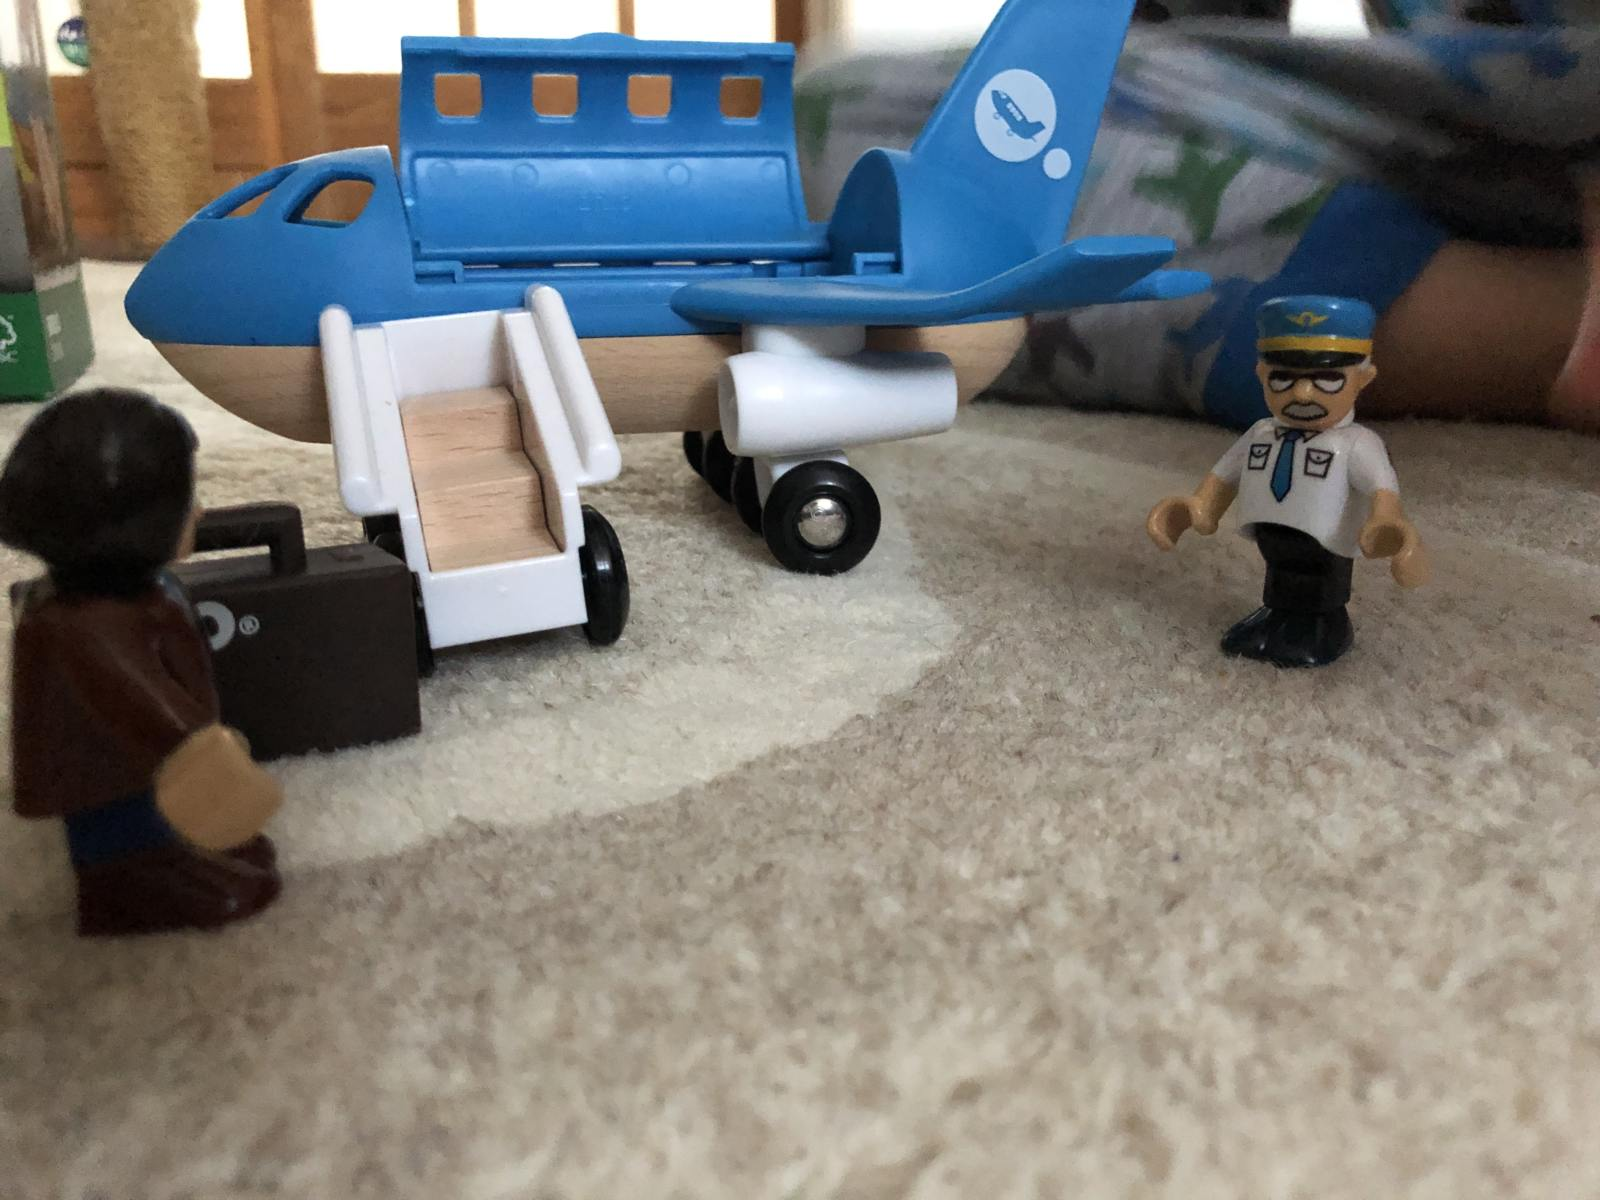 brio airplane with suitcase, pilot and passenger outside plane. The plane has stairs and a roof that opens.